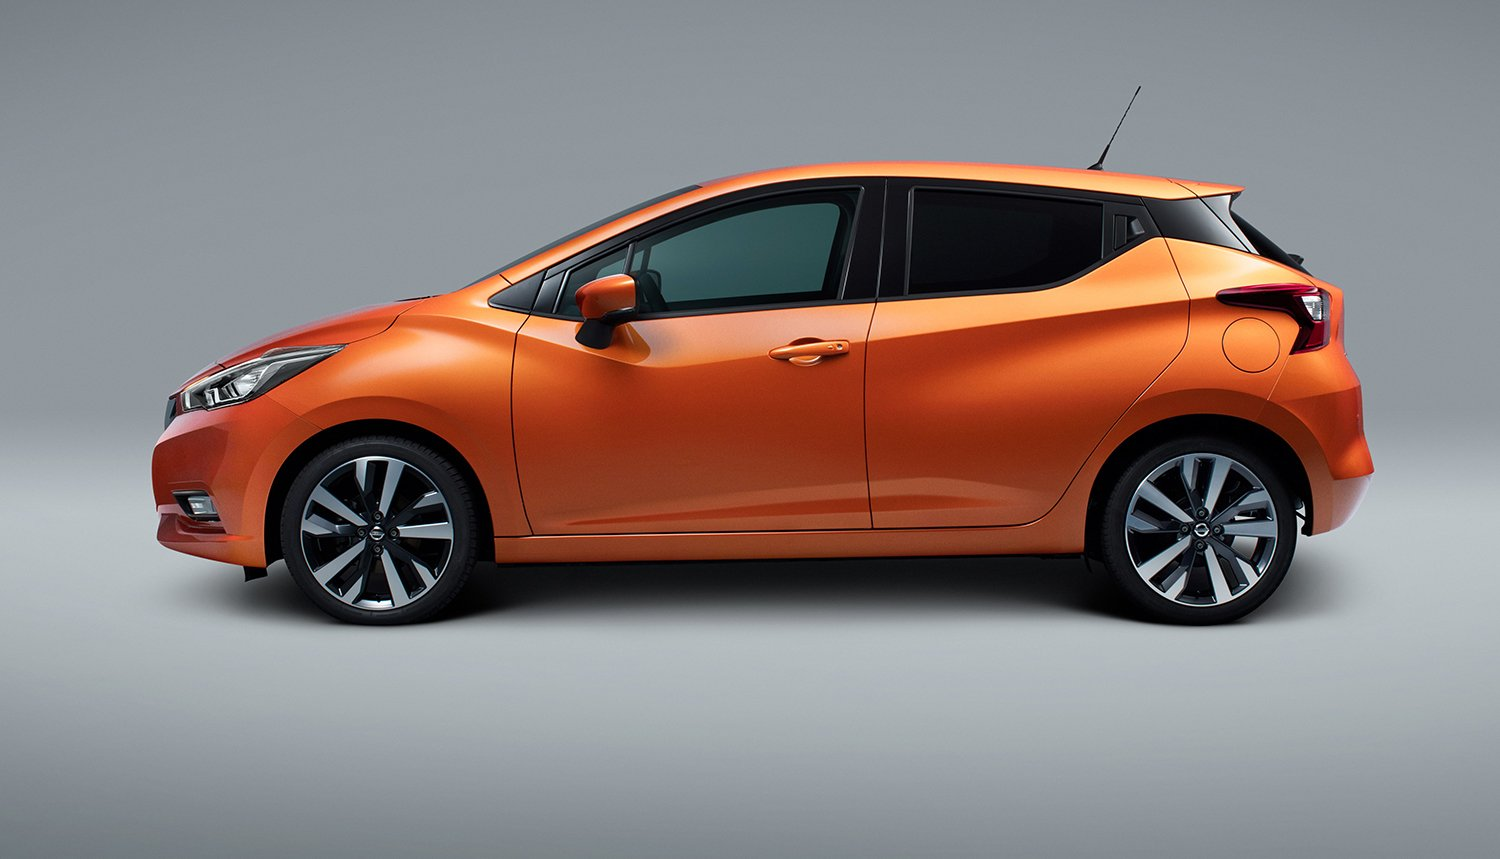 New Nissan Sports Car Price